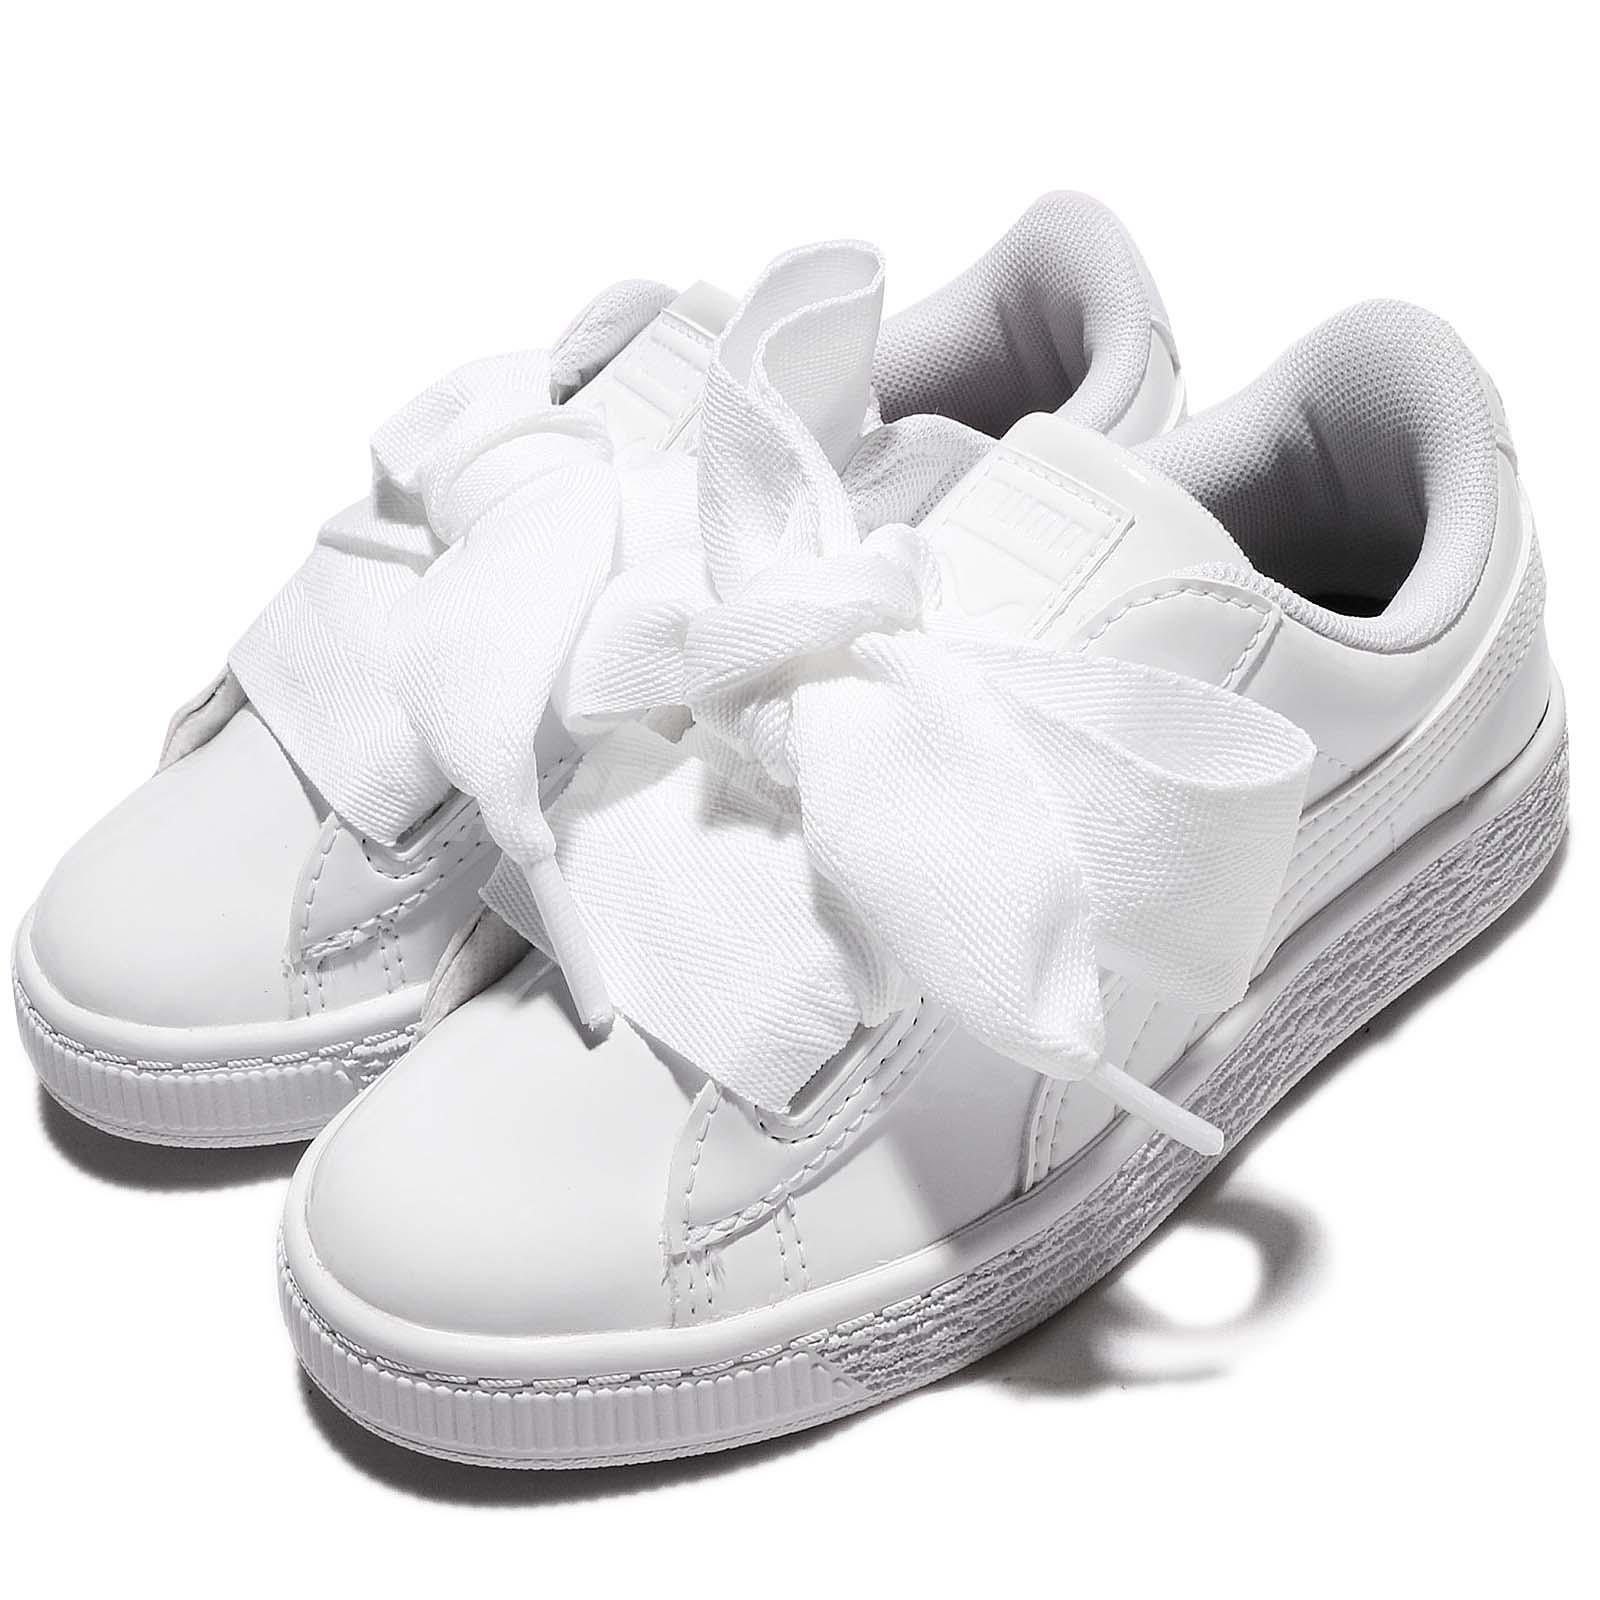 new styles 7a894 12107 Details about Puma Basket Heart Patent PS Leather White Kids Junior Girls  Shoes 36335202